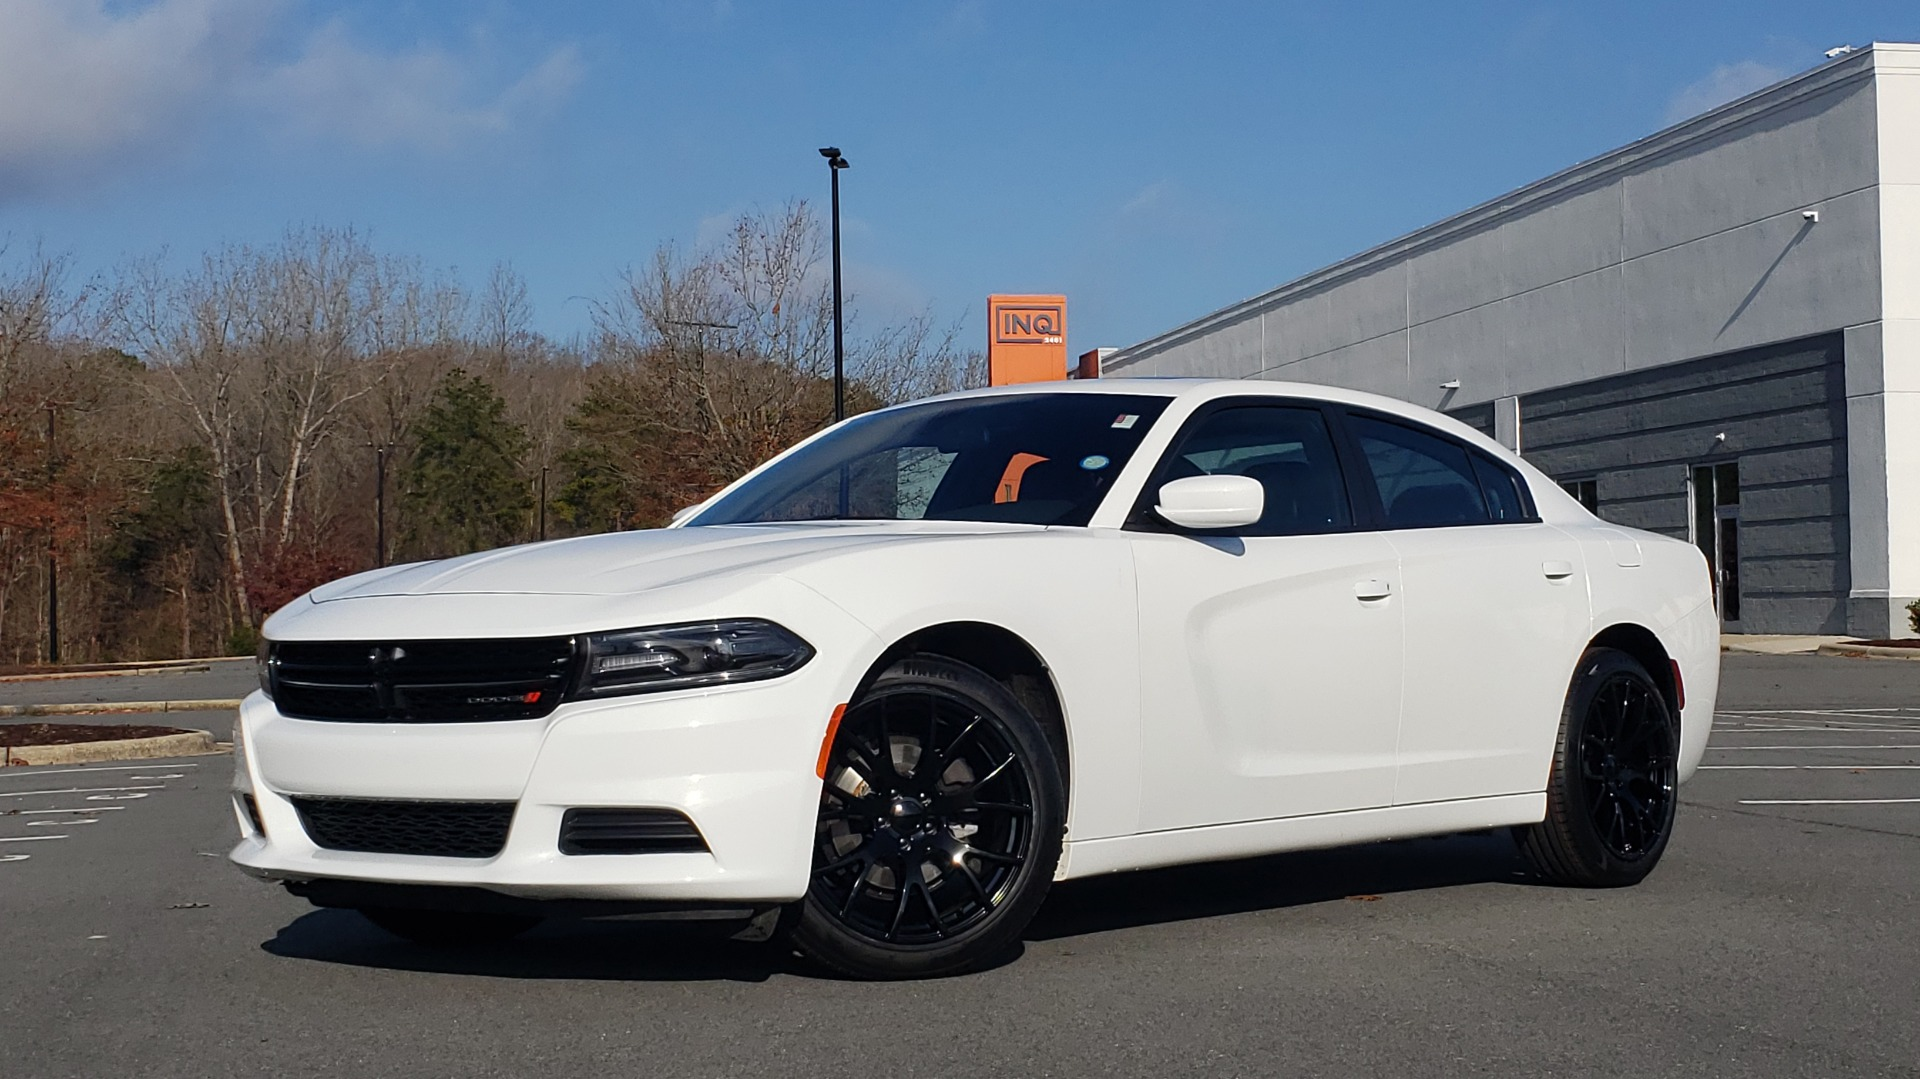 Used 2020 Dodge CHARGER SXT / RWD / V6 / 8-SPD AUTO / LTHR / HTD STS / SUNROOF / REARVIEW for sale $25,995 at Formula Imports in Charlotte NC 28227 1